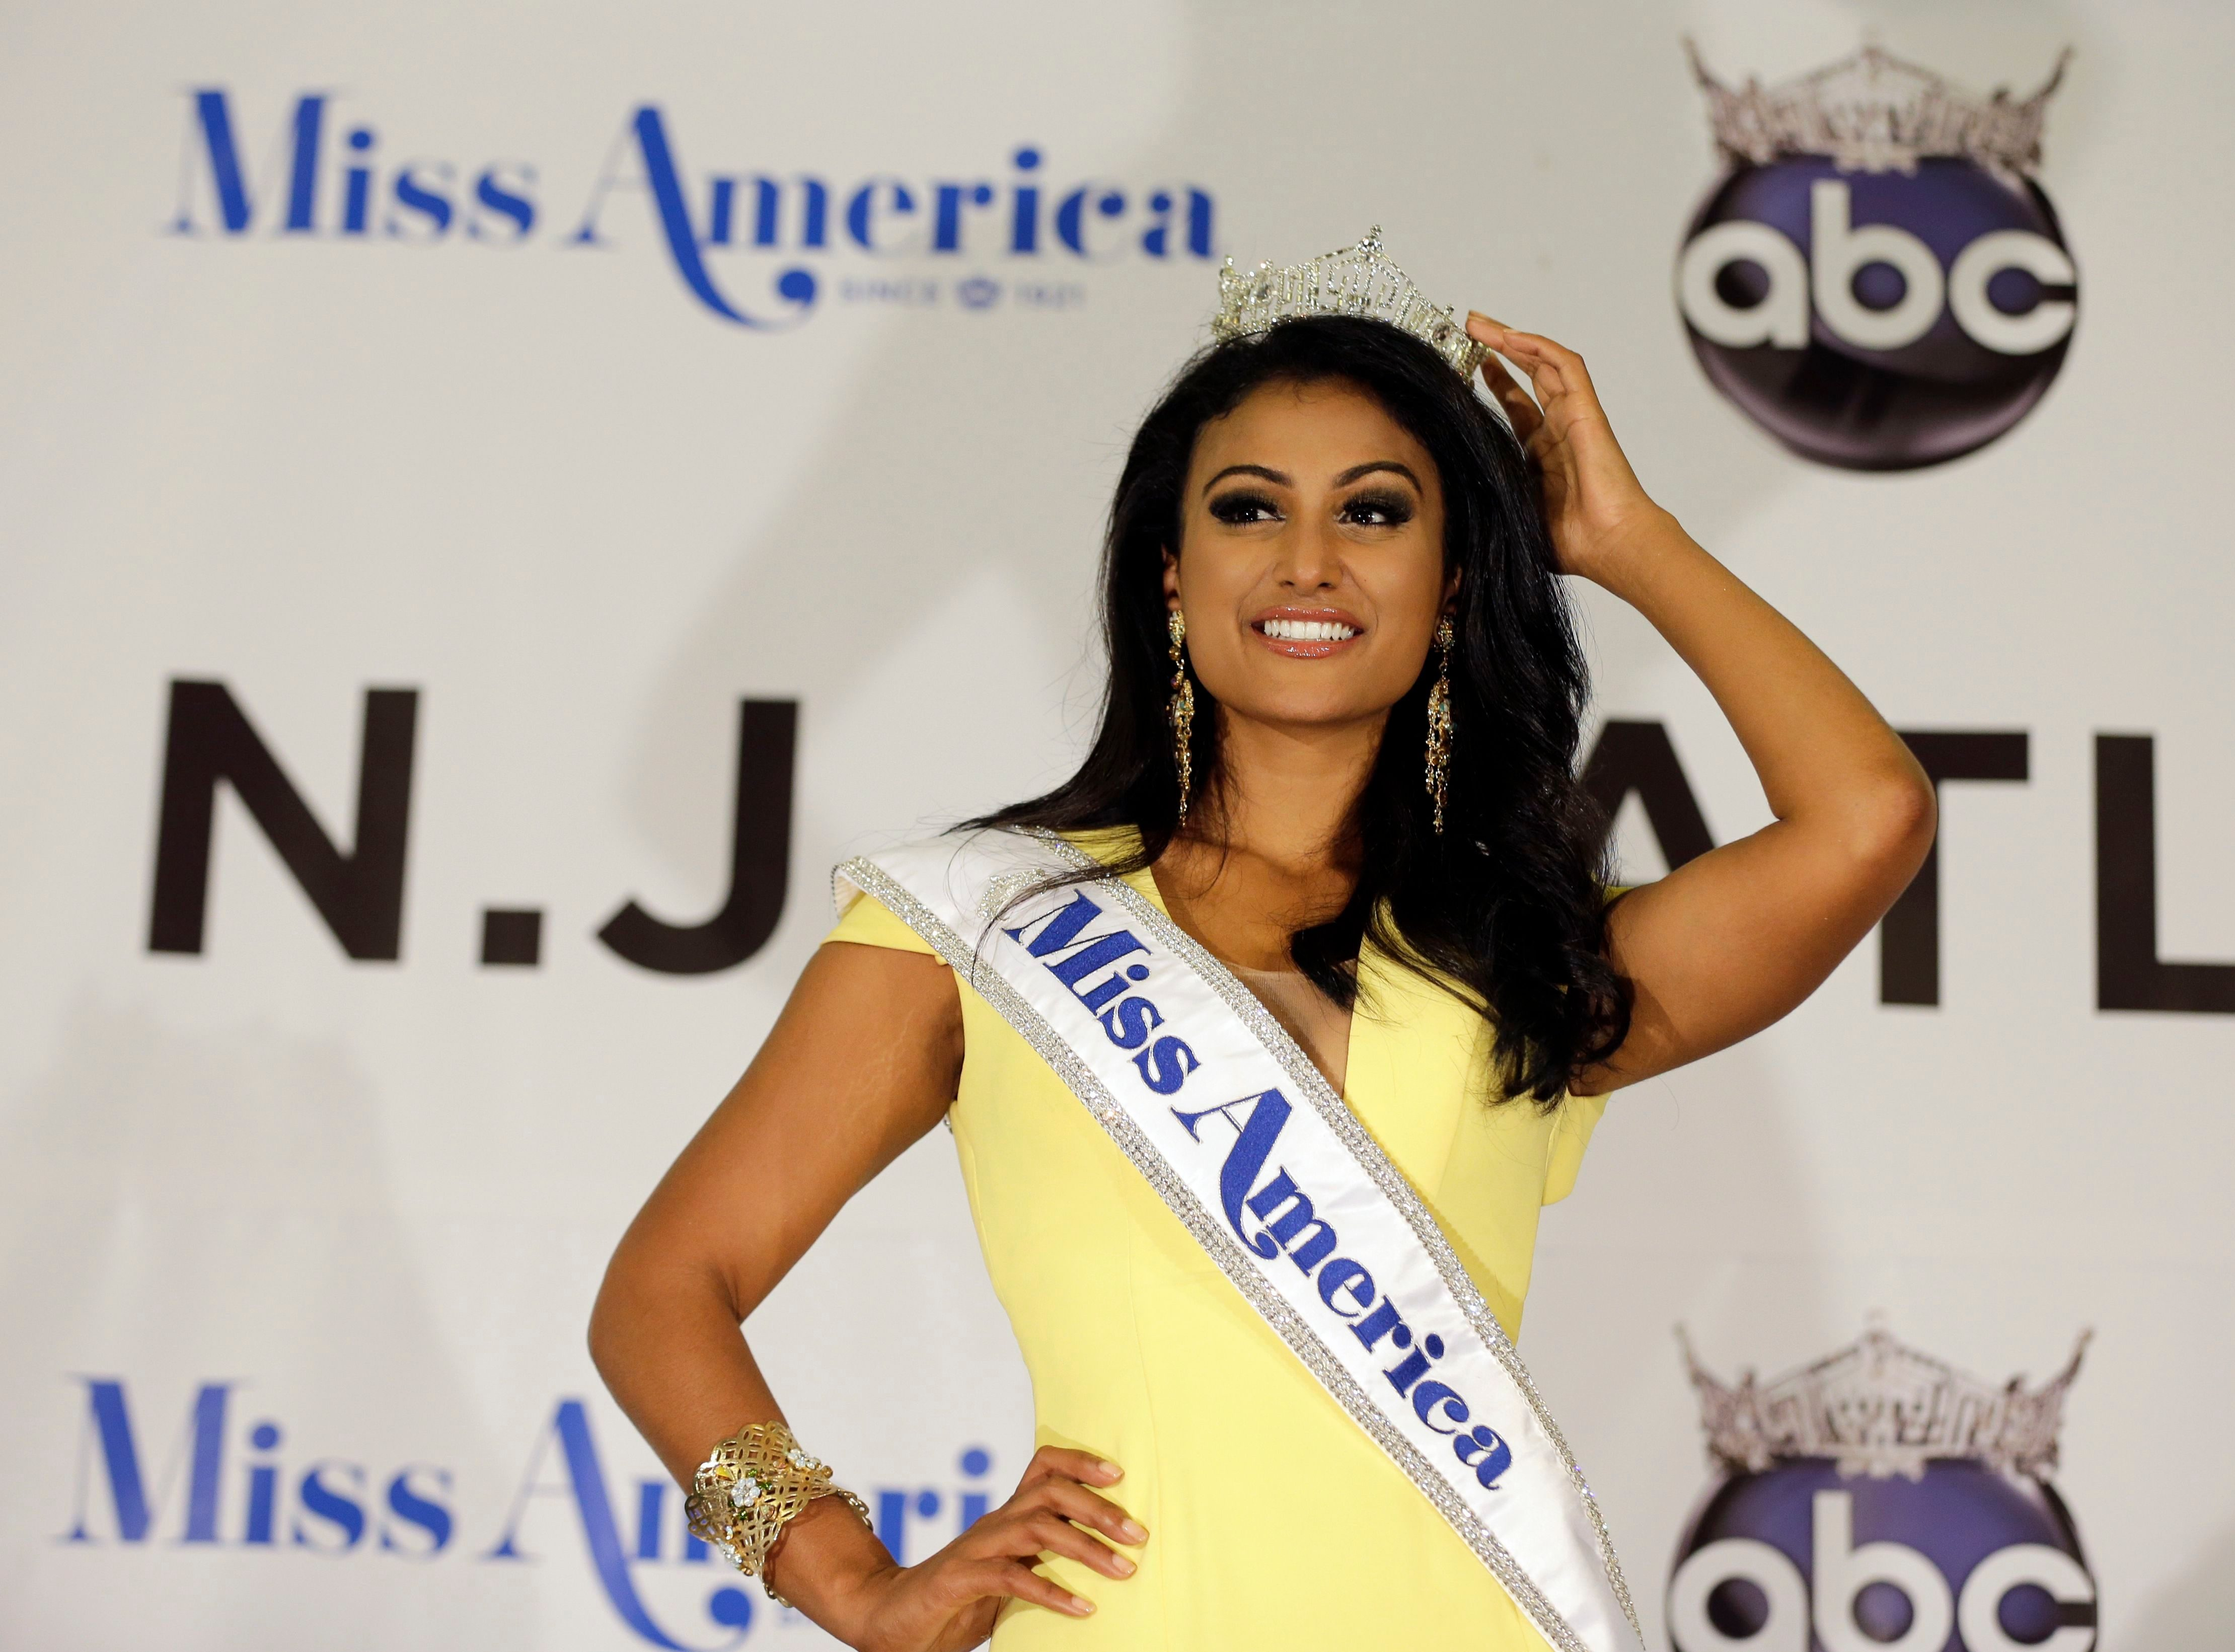 Mandatory Credit: Photo by Mel Evans/AP/Shutterstock (6199142a) Nina Davuluri Miss America Nina Davuluri poses for photographers following her crowning in Atlantic City, N.J. For some who observe the progress of people of color in the U.S., Davaluri's victory in the Miss America pageant shows that Indian-Americans can become icons even in parts of mainstream American culture that once seemed closed Miss America New Kind of Icon, Atlantic City, USA